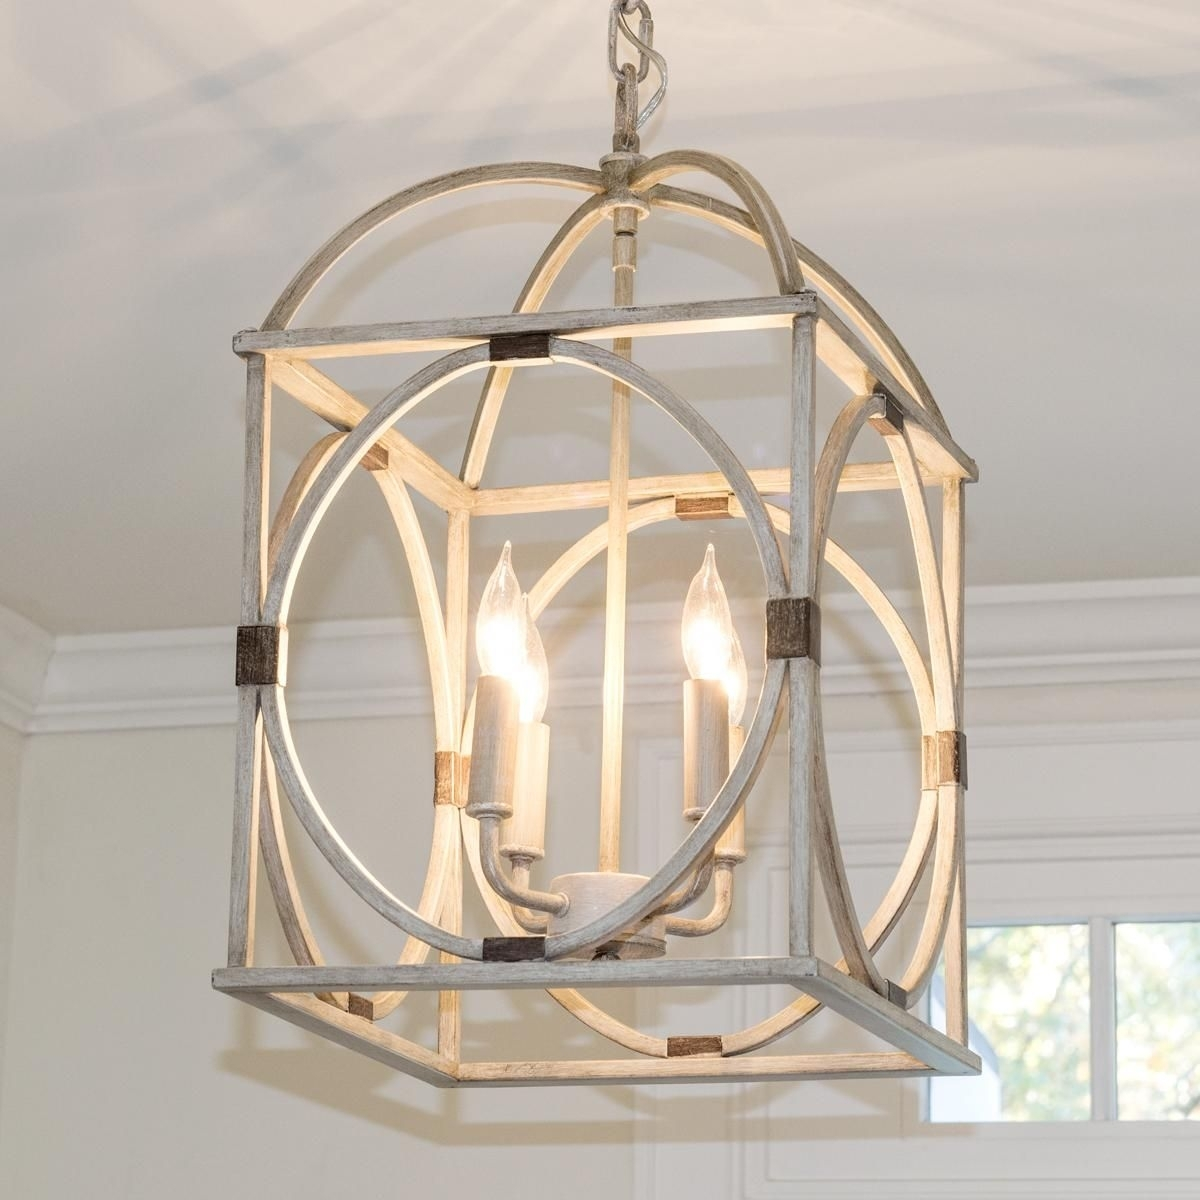 Circle Lattice Hanging Lantern | Hanging Lanterns, Light Oak And Lights Inside Outdoor Hanging Lights Masters (View 6 of 15)